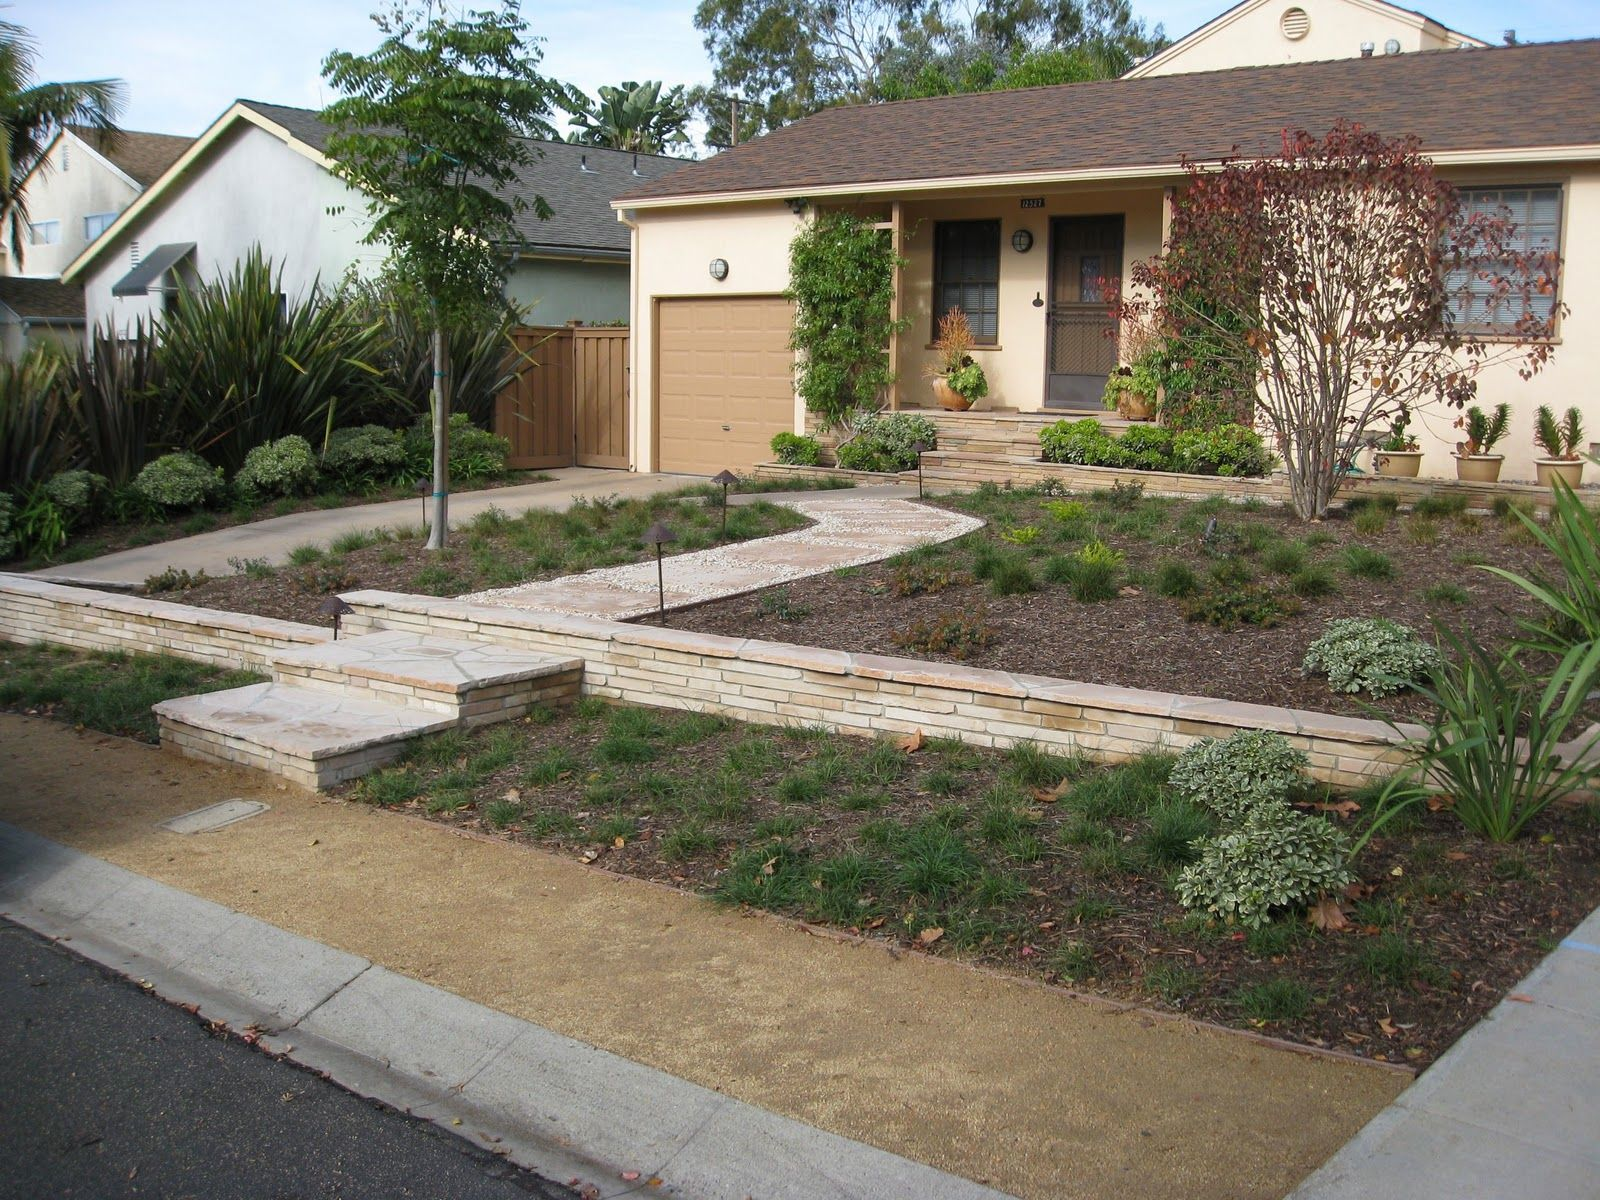 Mar Vista Green Garden Showcase: 12527 Westminster Avenue